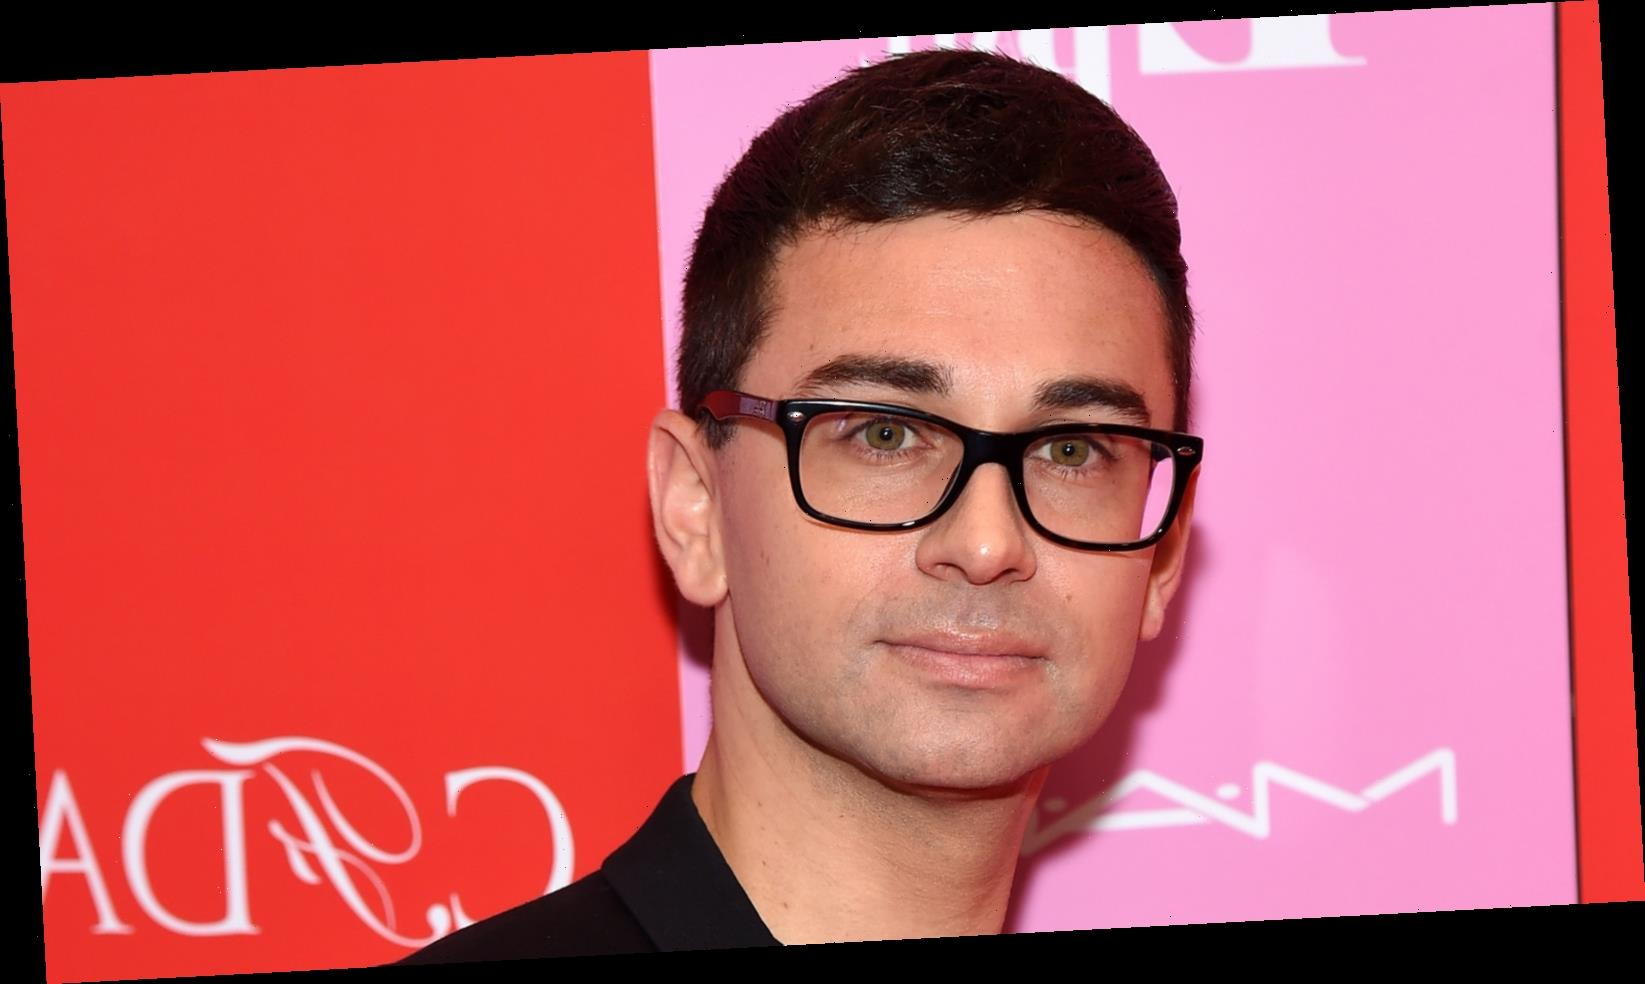 Whatever Happened To Christian Siriano From Project Runway?